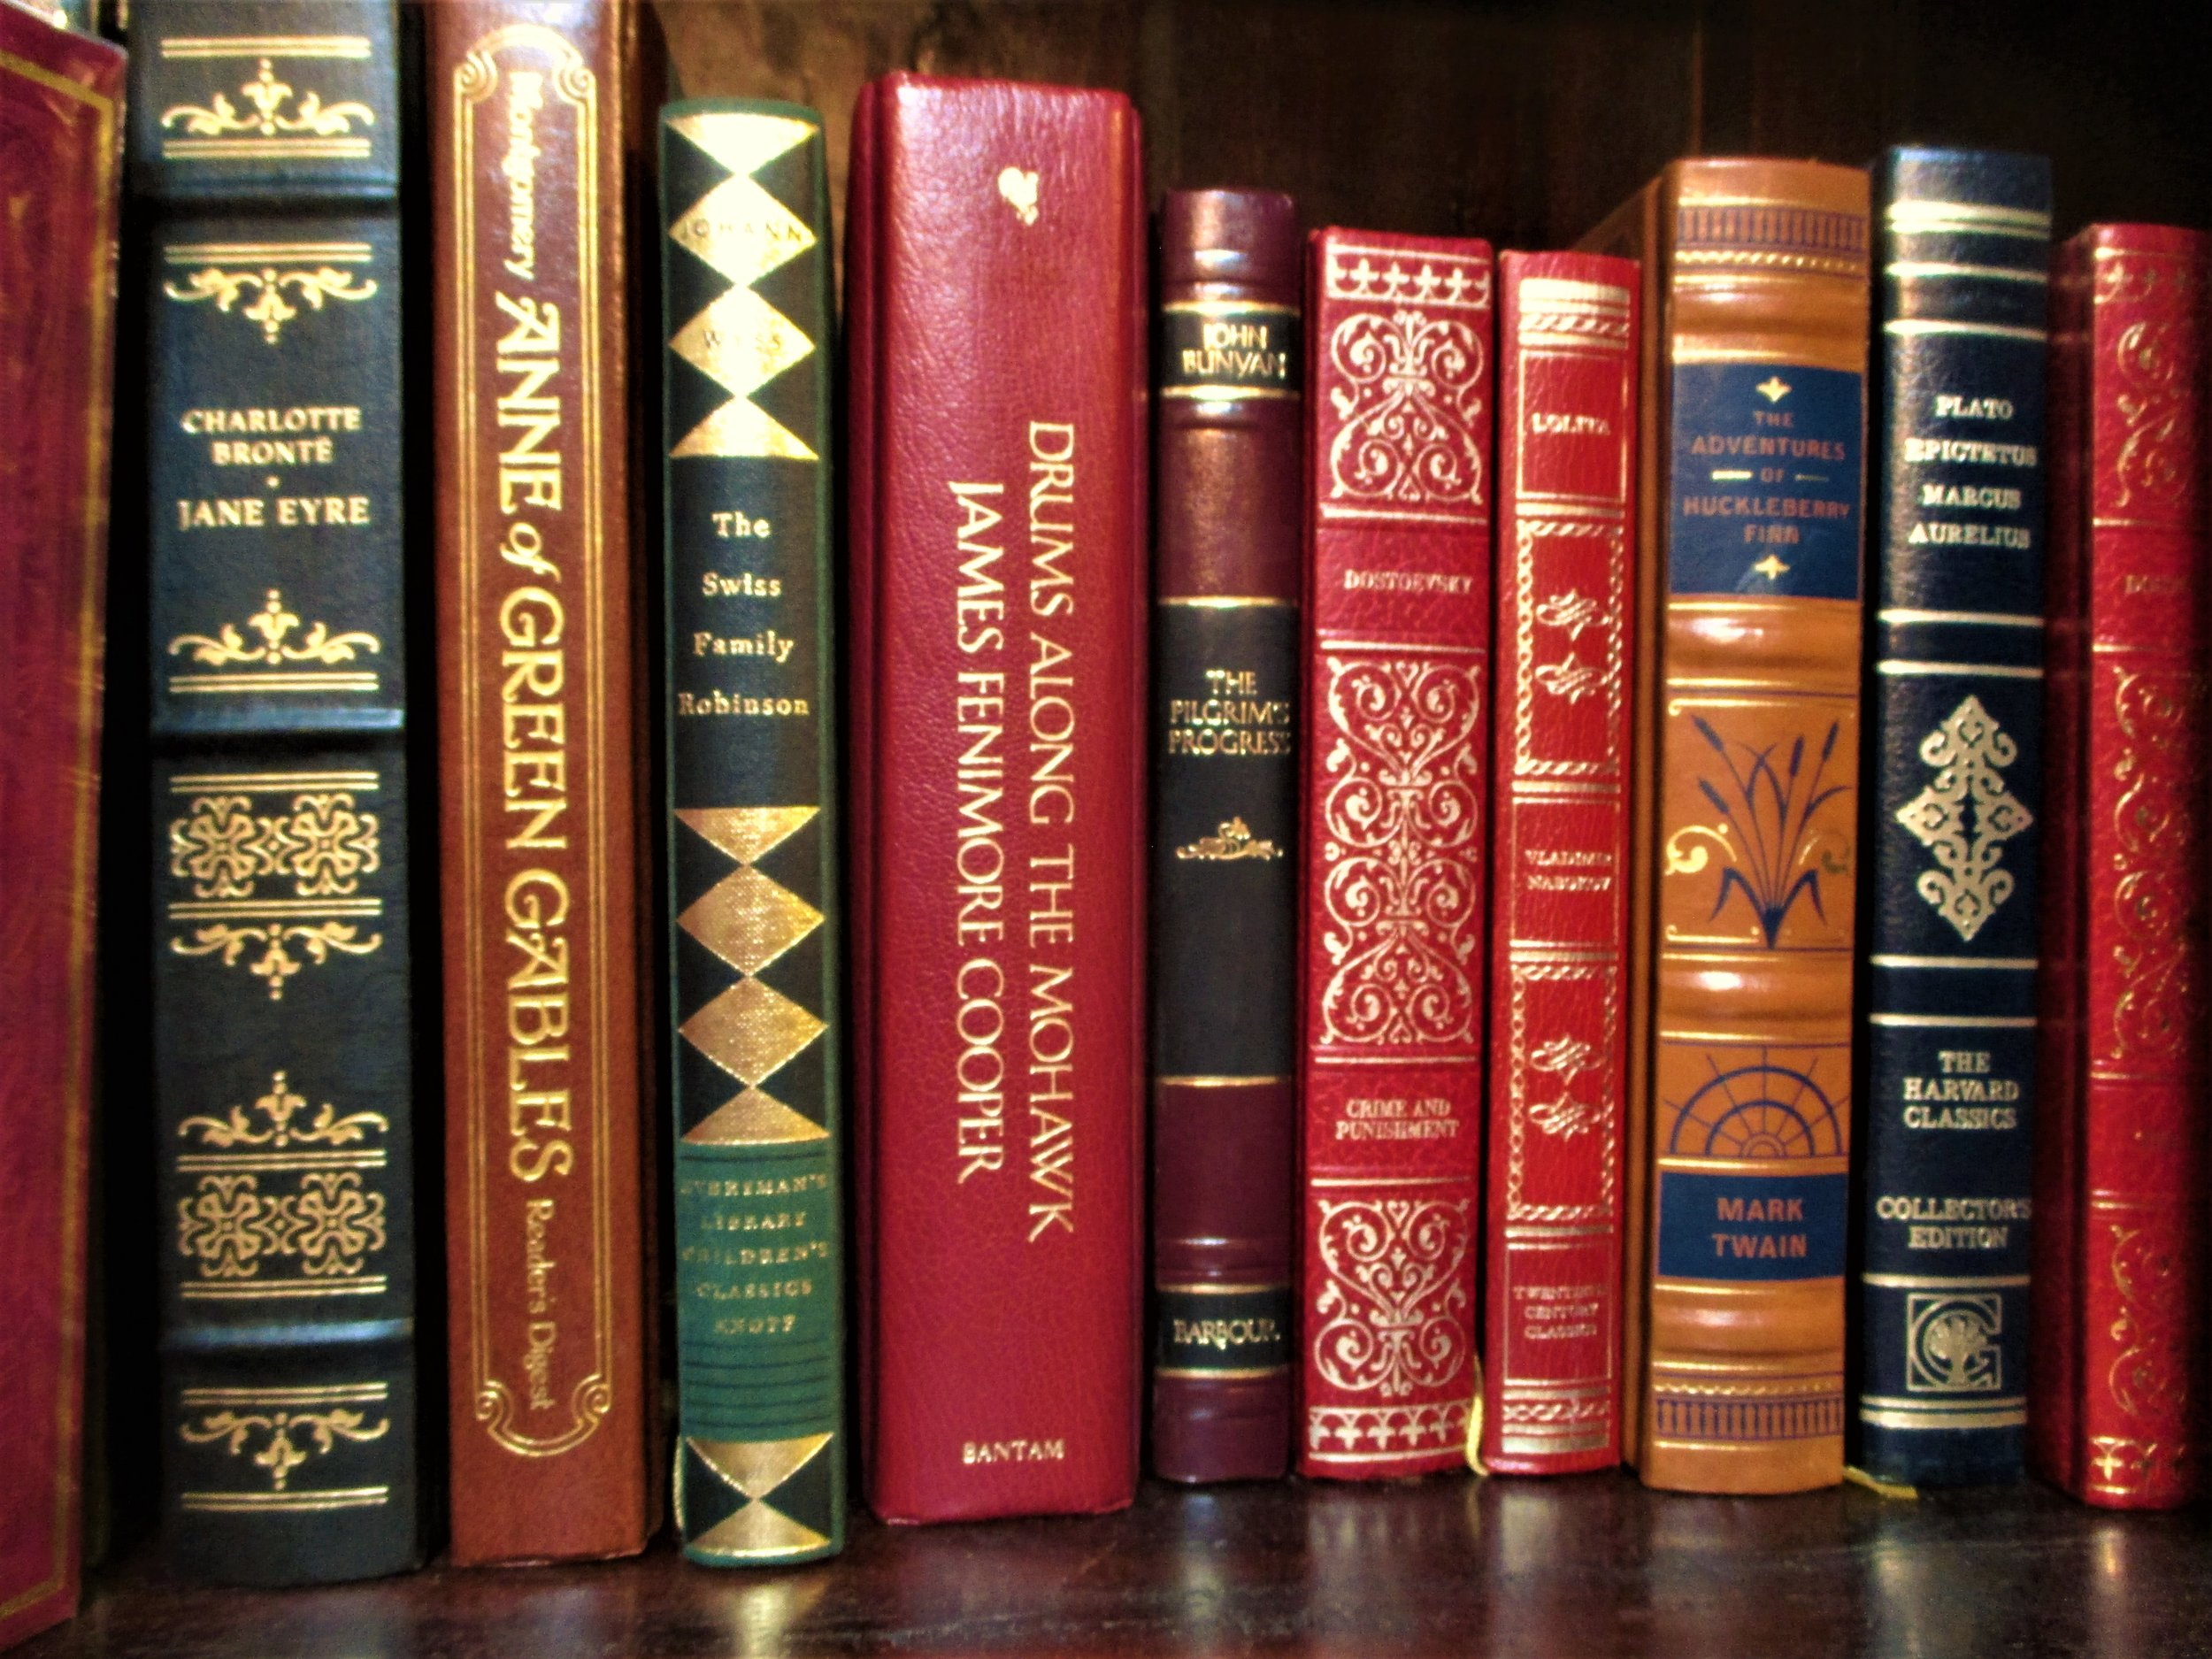 Deluxe Editions - We're not an antiquarian shop, but we do carry some special editions, early printings, and old books.These are all individually priced.